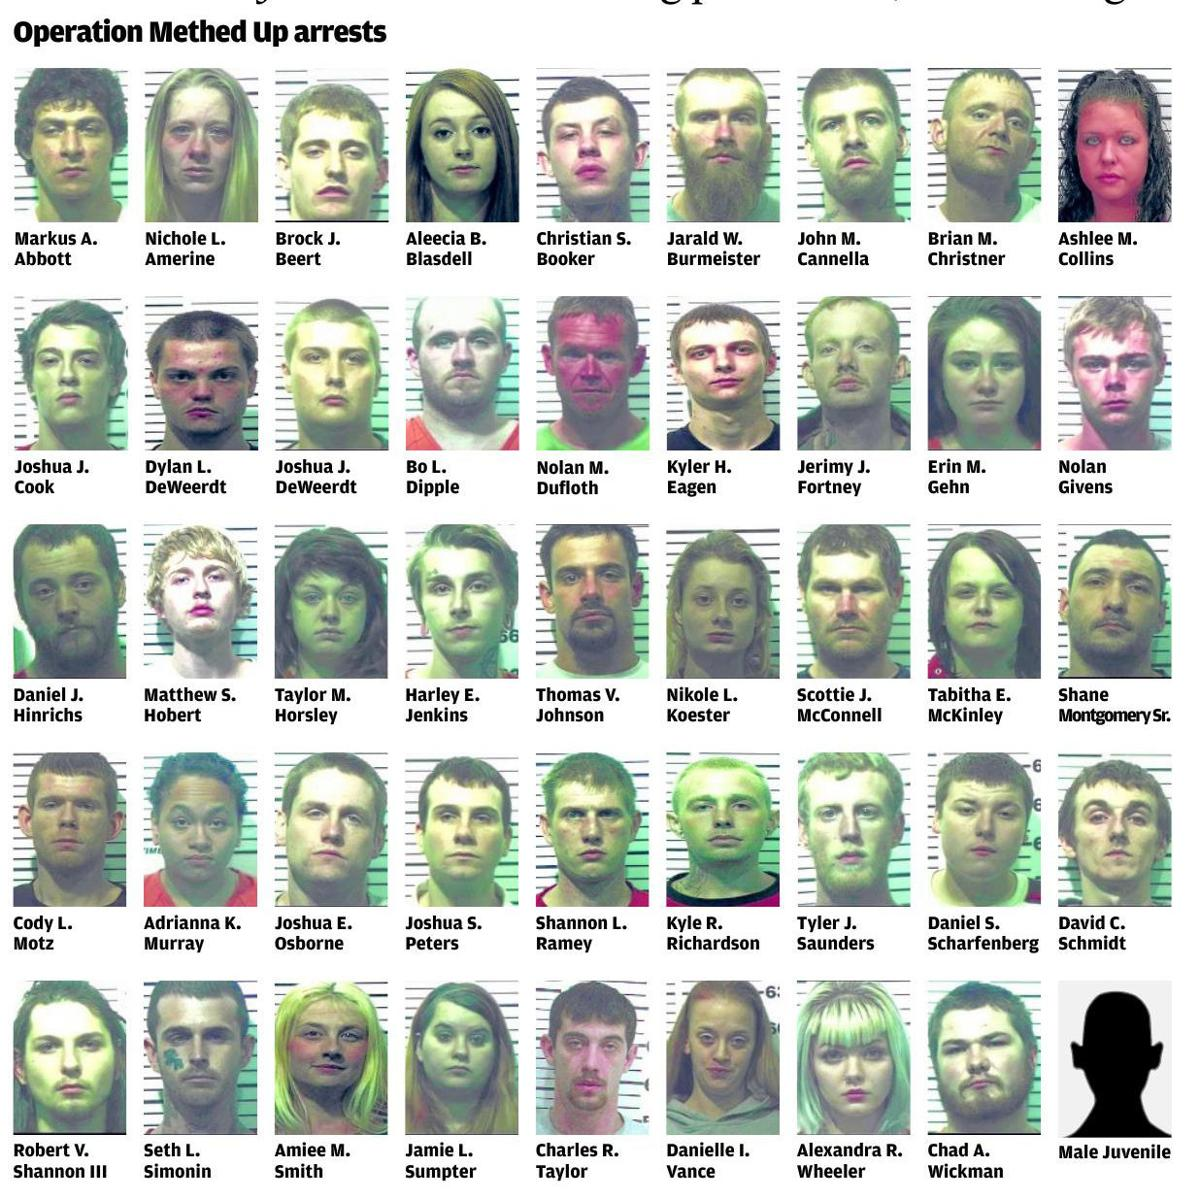 Operation Methed Up' nets 46 | Local Crime & Courts